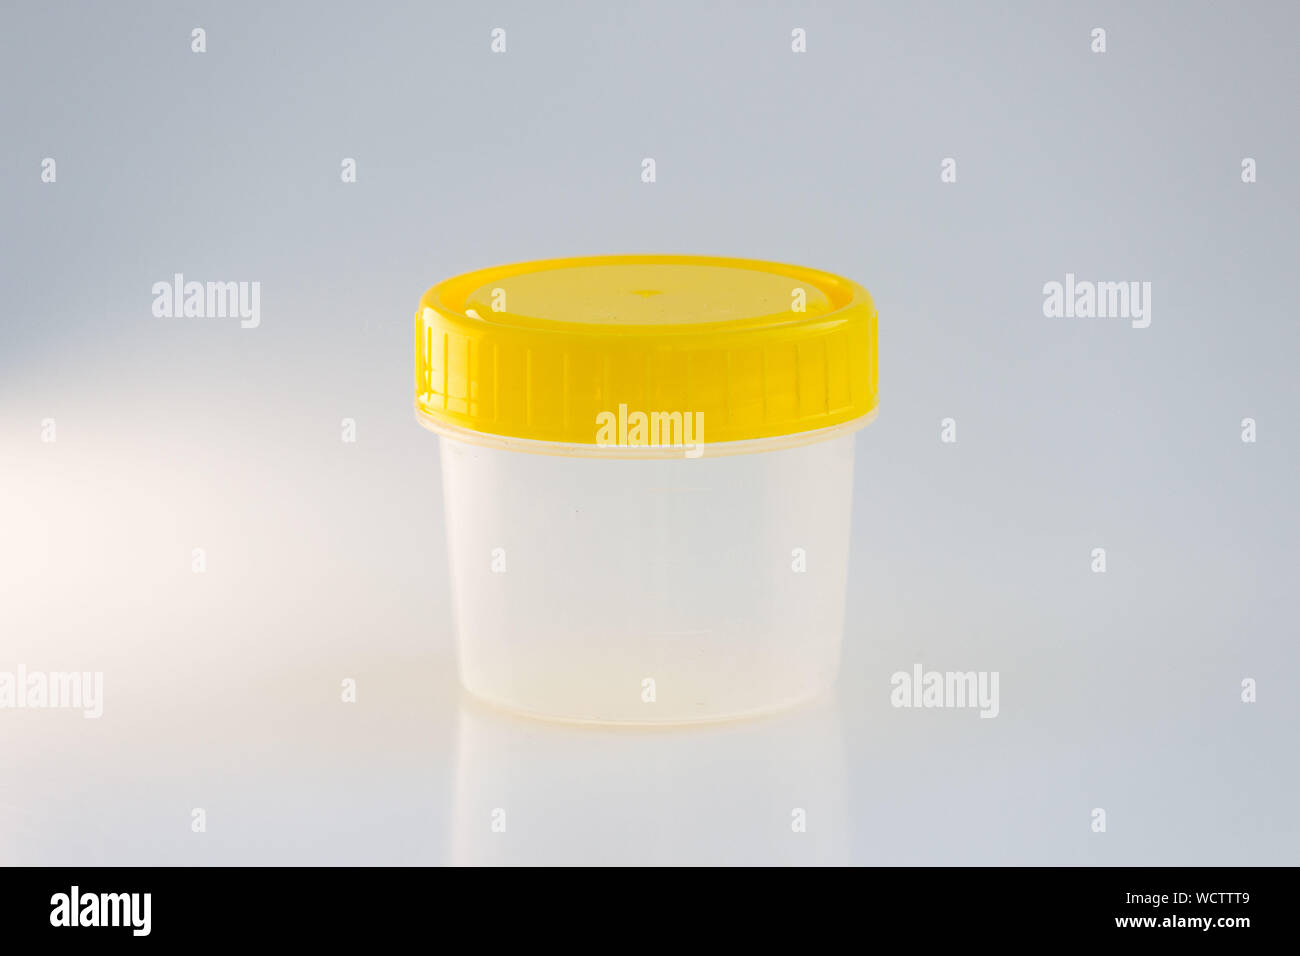 transparent plastic jar with a yellow lid on a white background. for analysis. Stock Photo